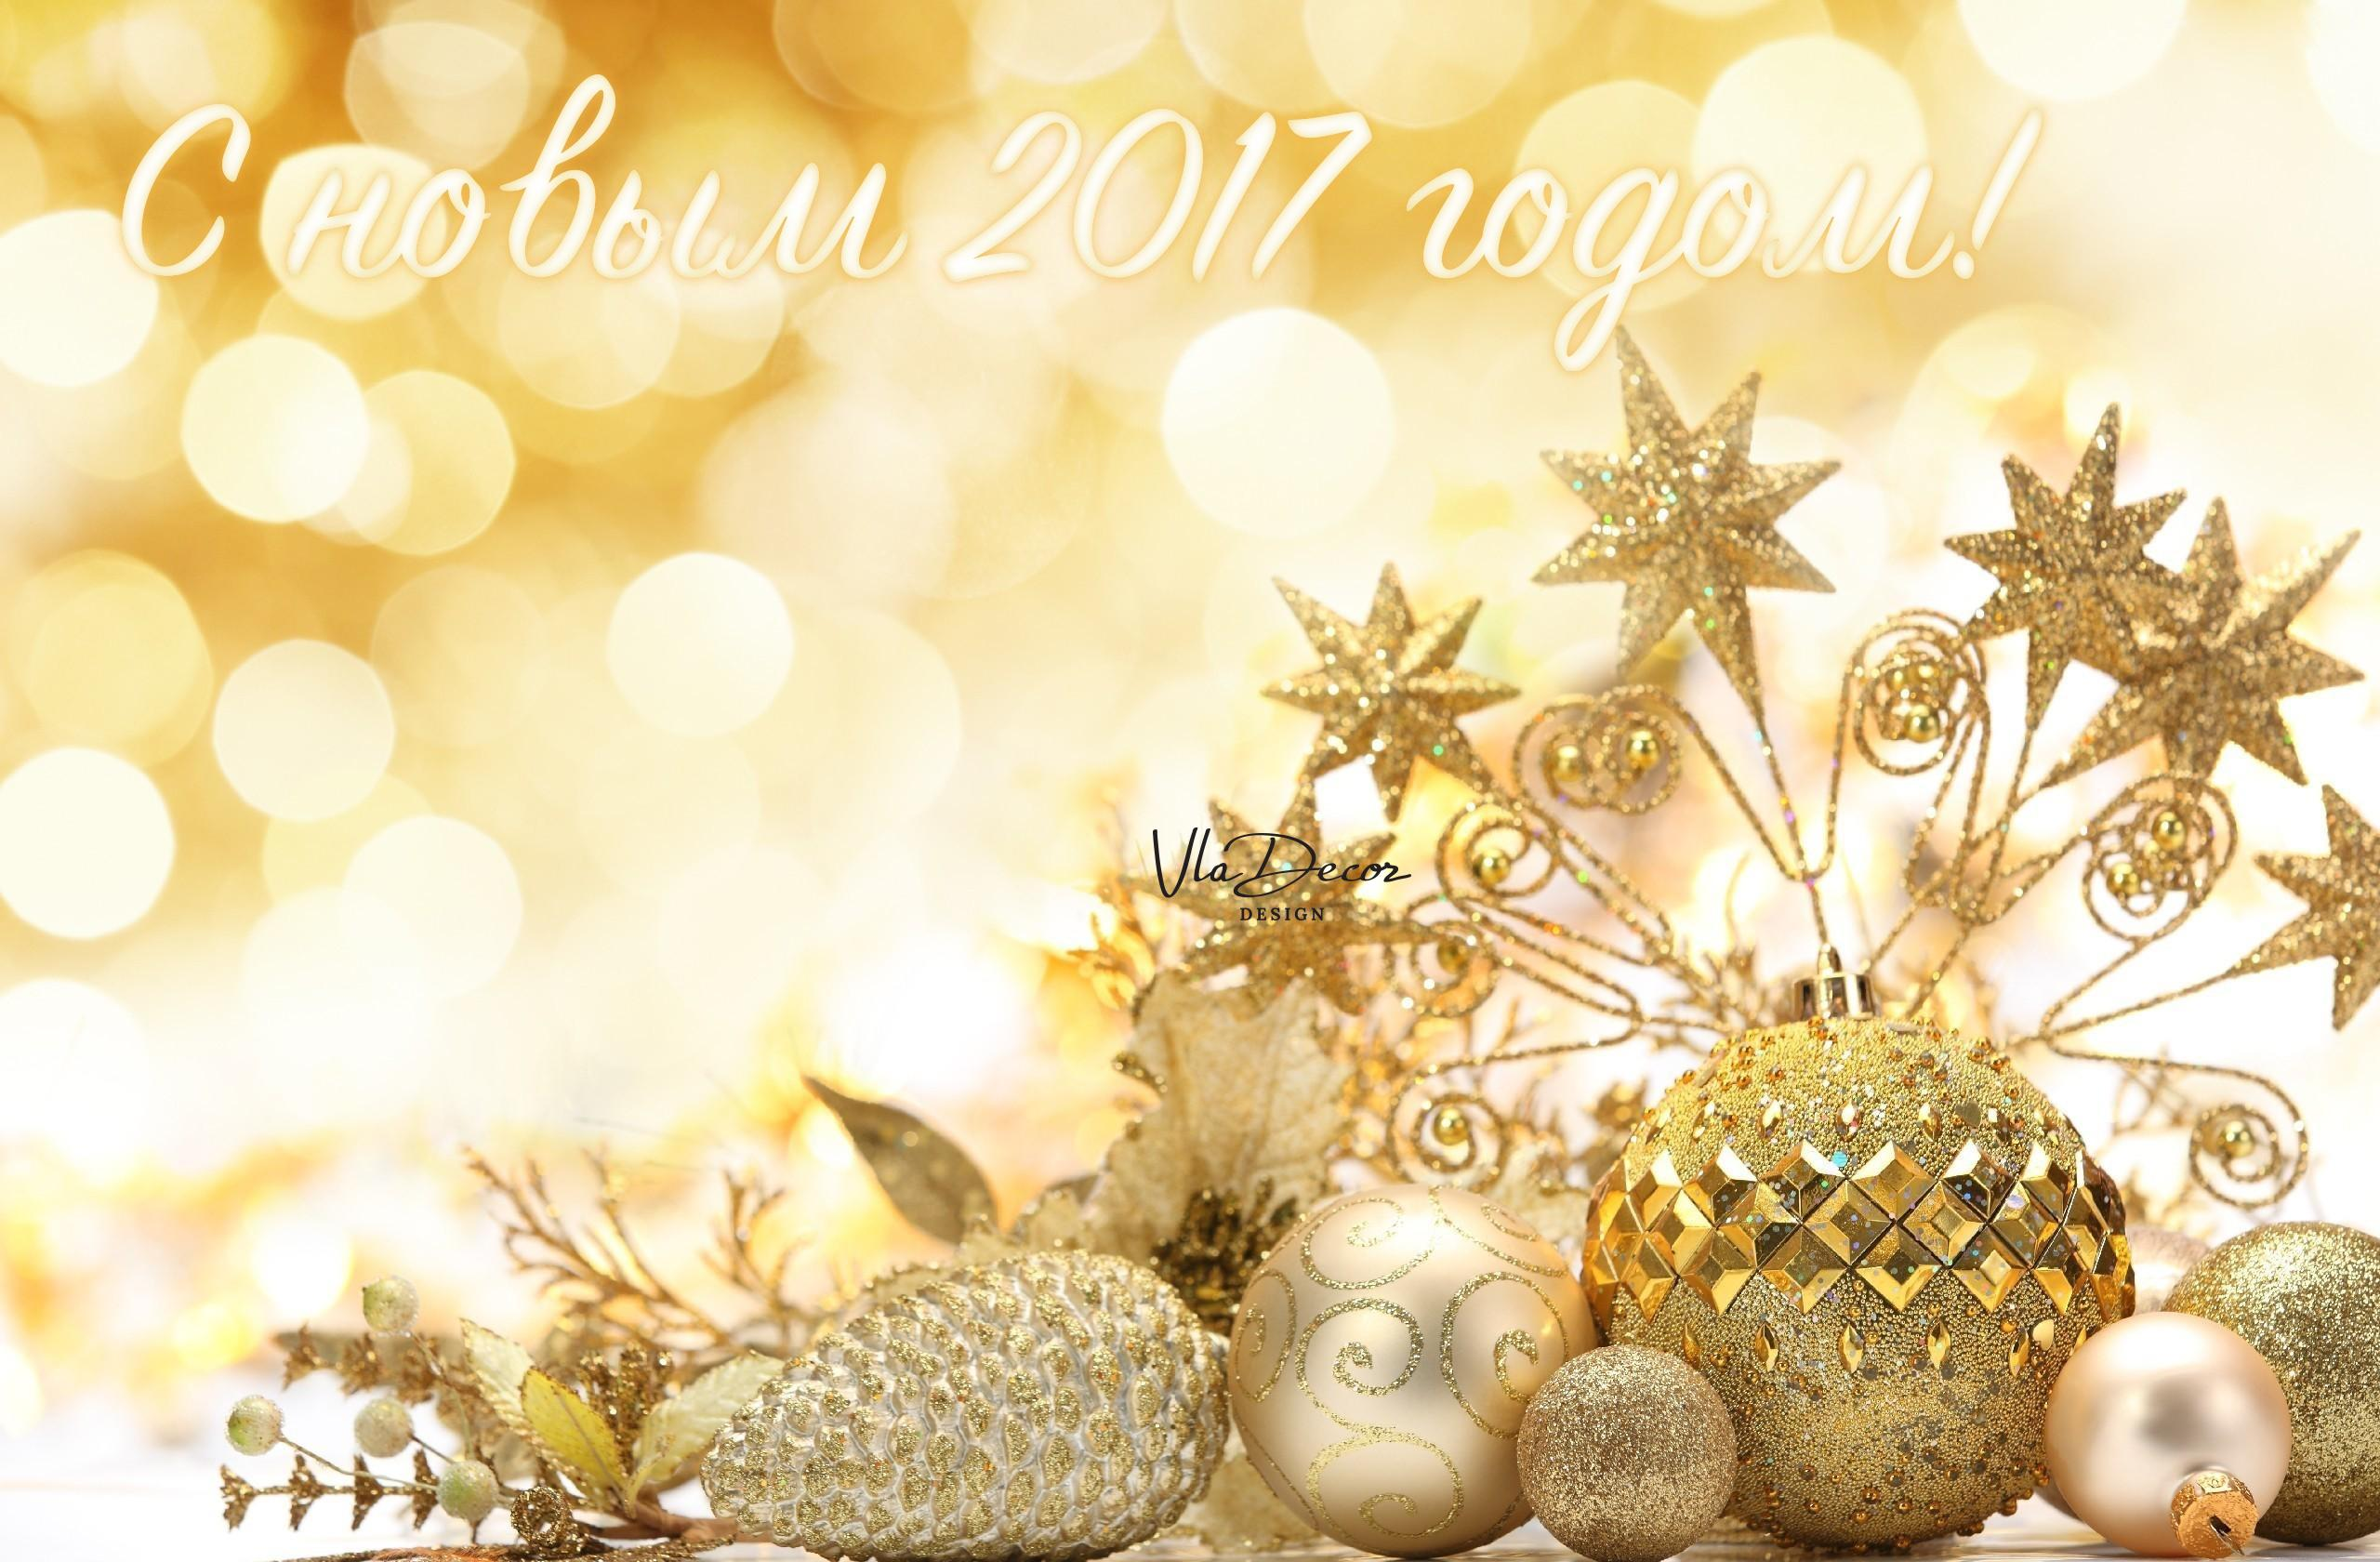 christmas-ornament-background-22